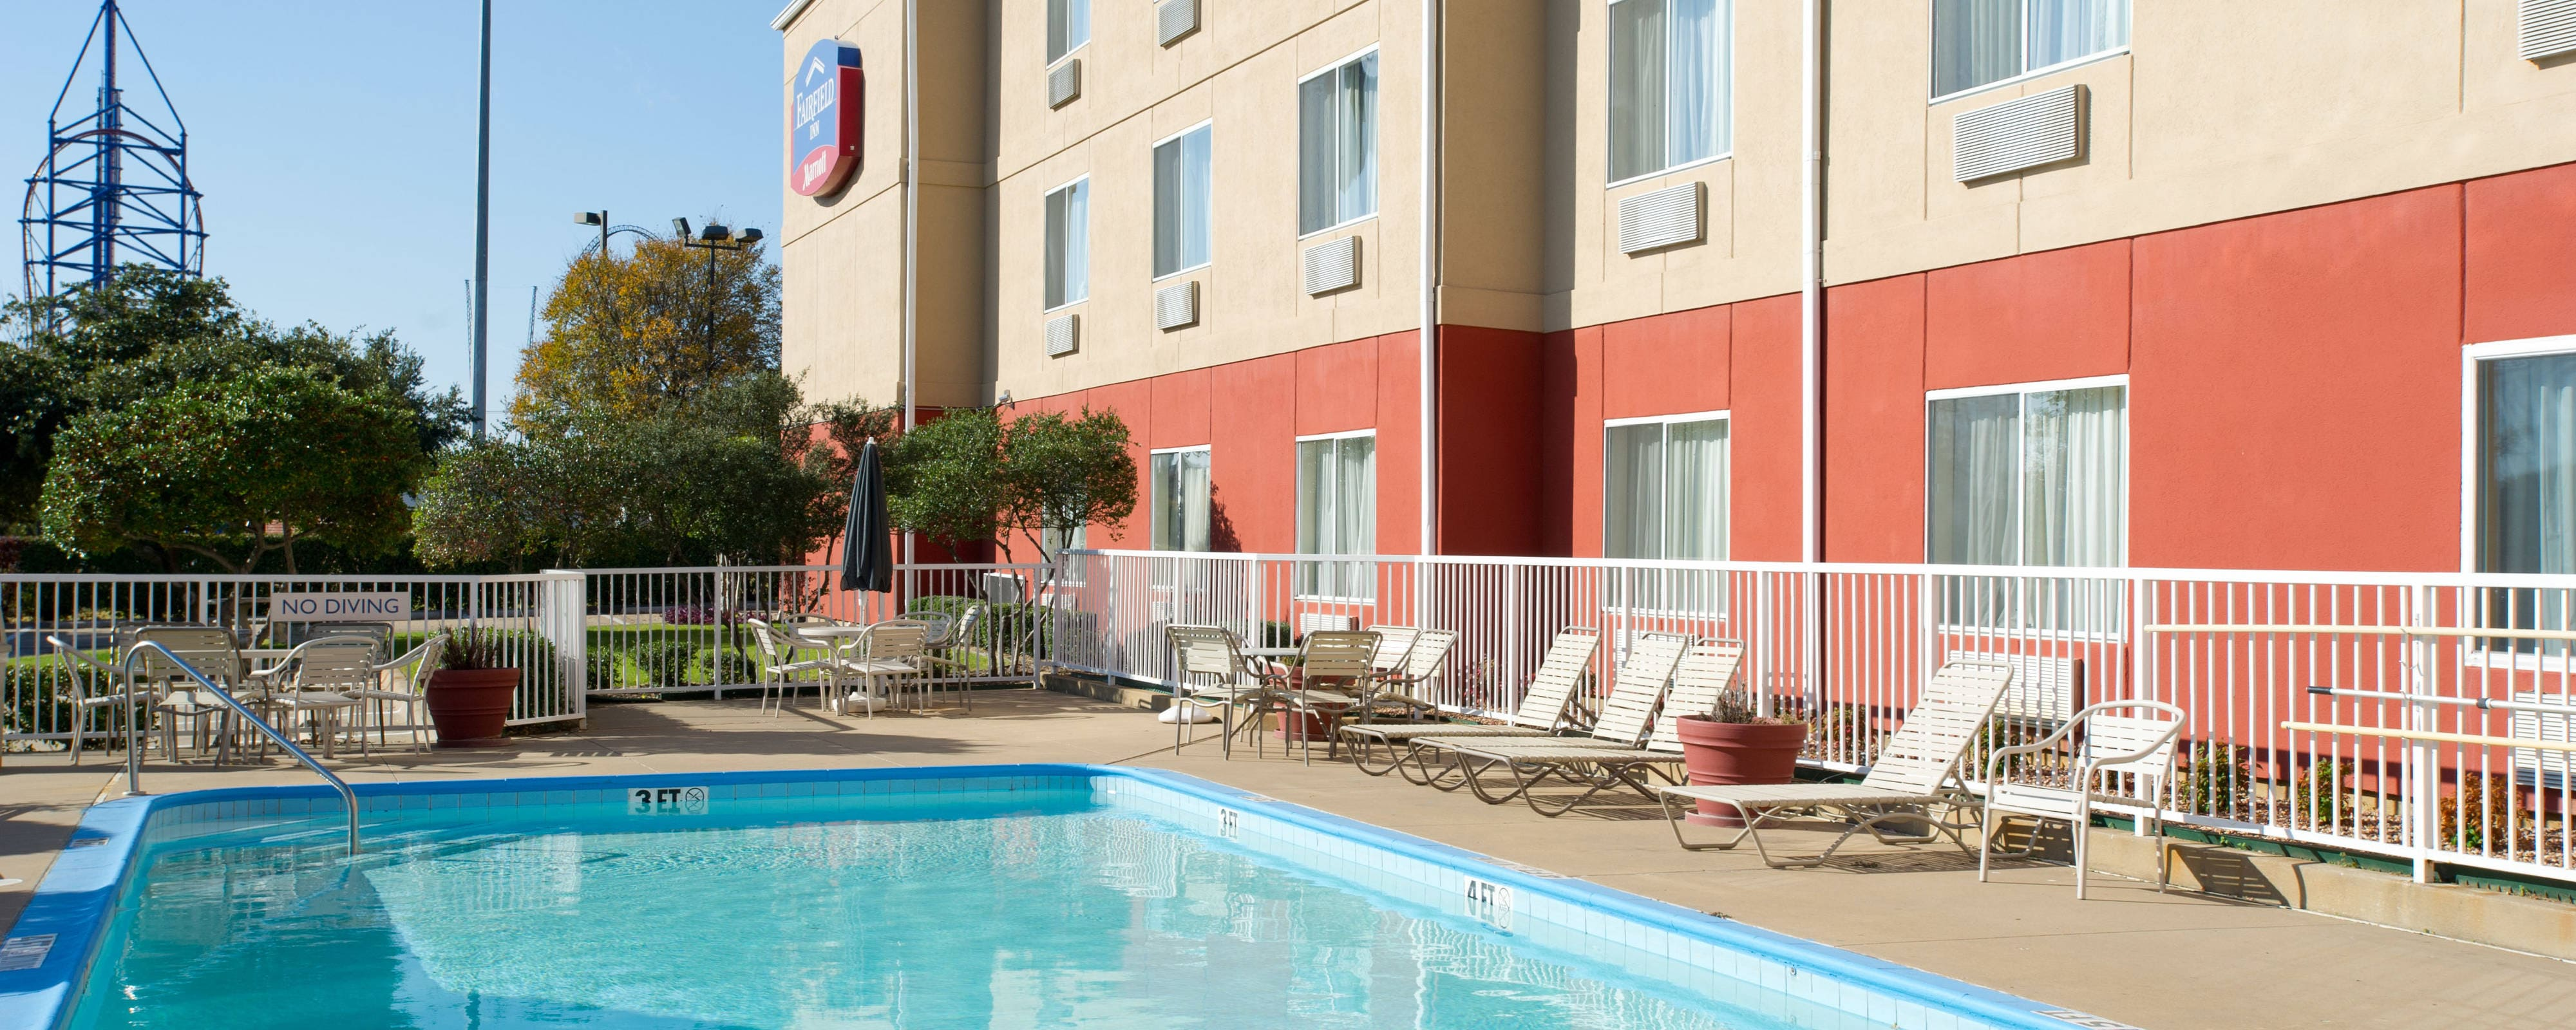 Fairfield Inn DFW Outdoor Pool